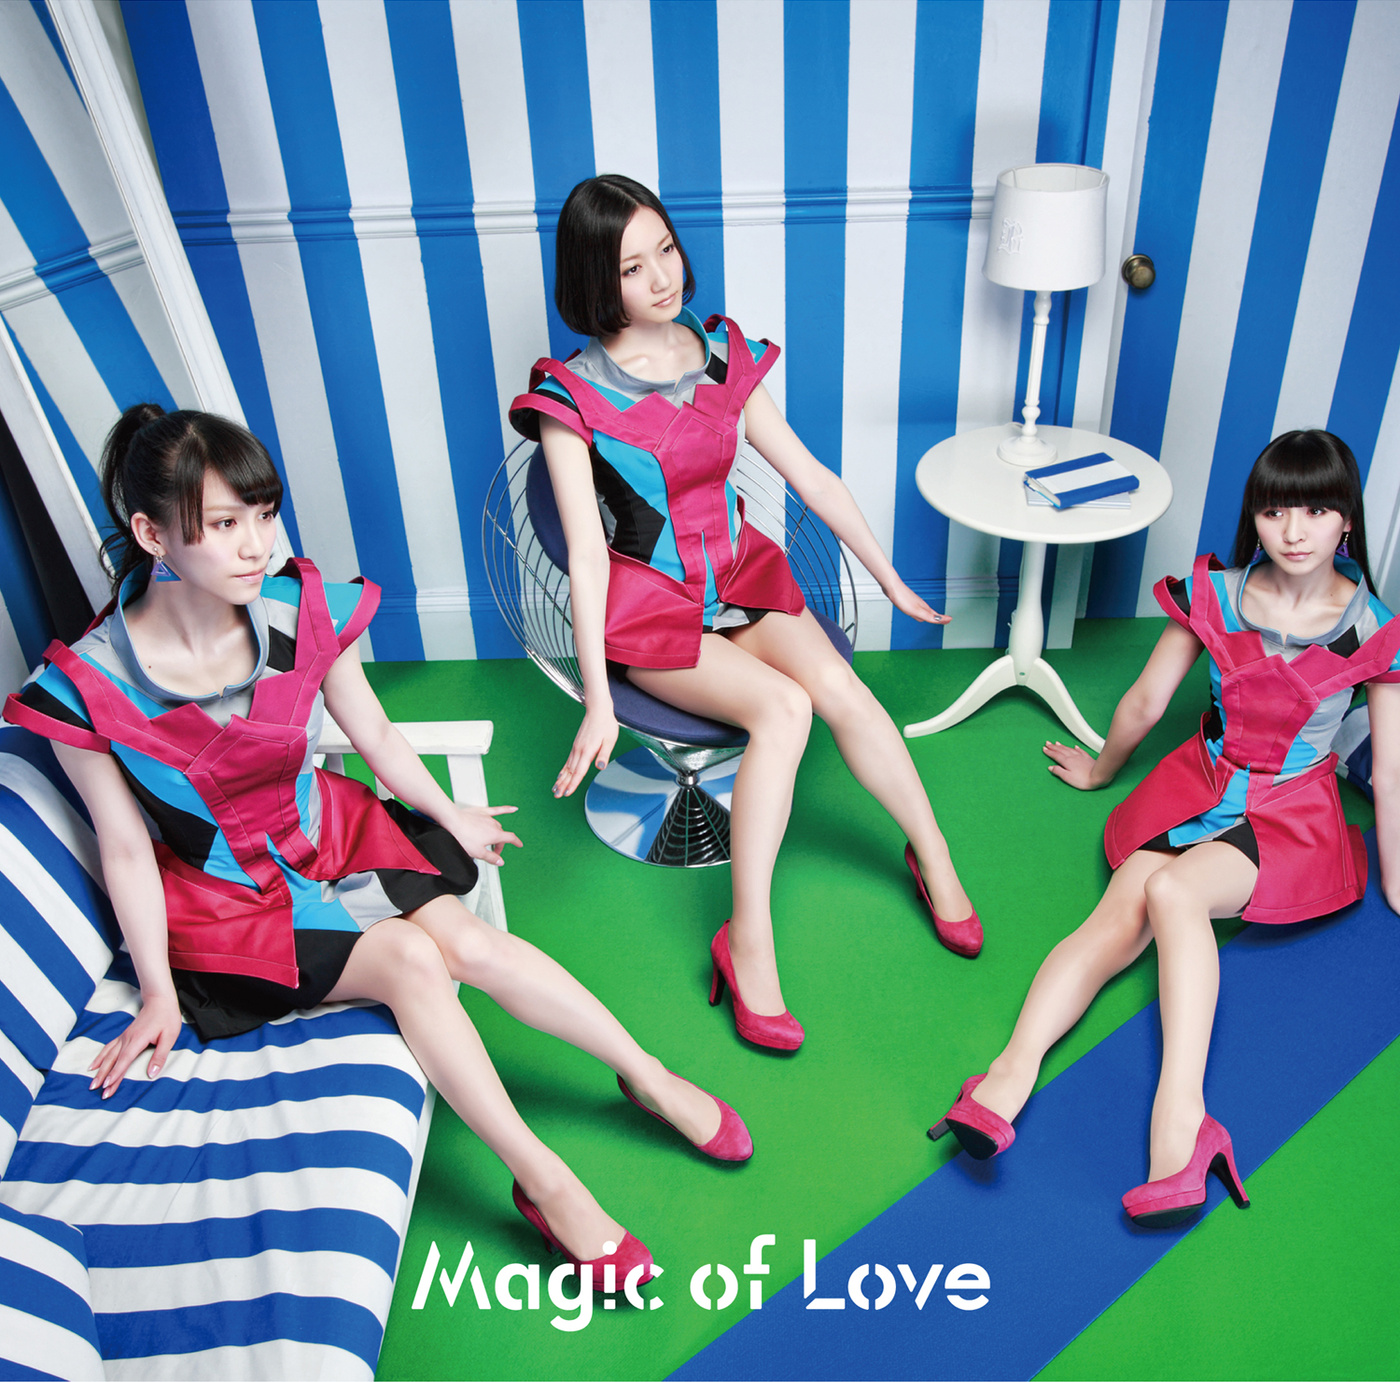 20190110.1240.37 Perfume - Magic of Love cover 1.jpg